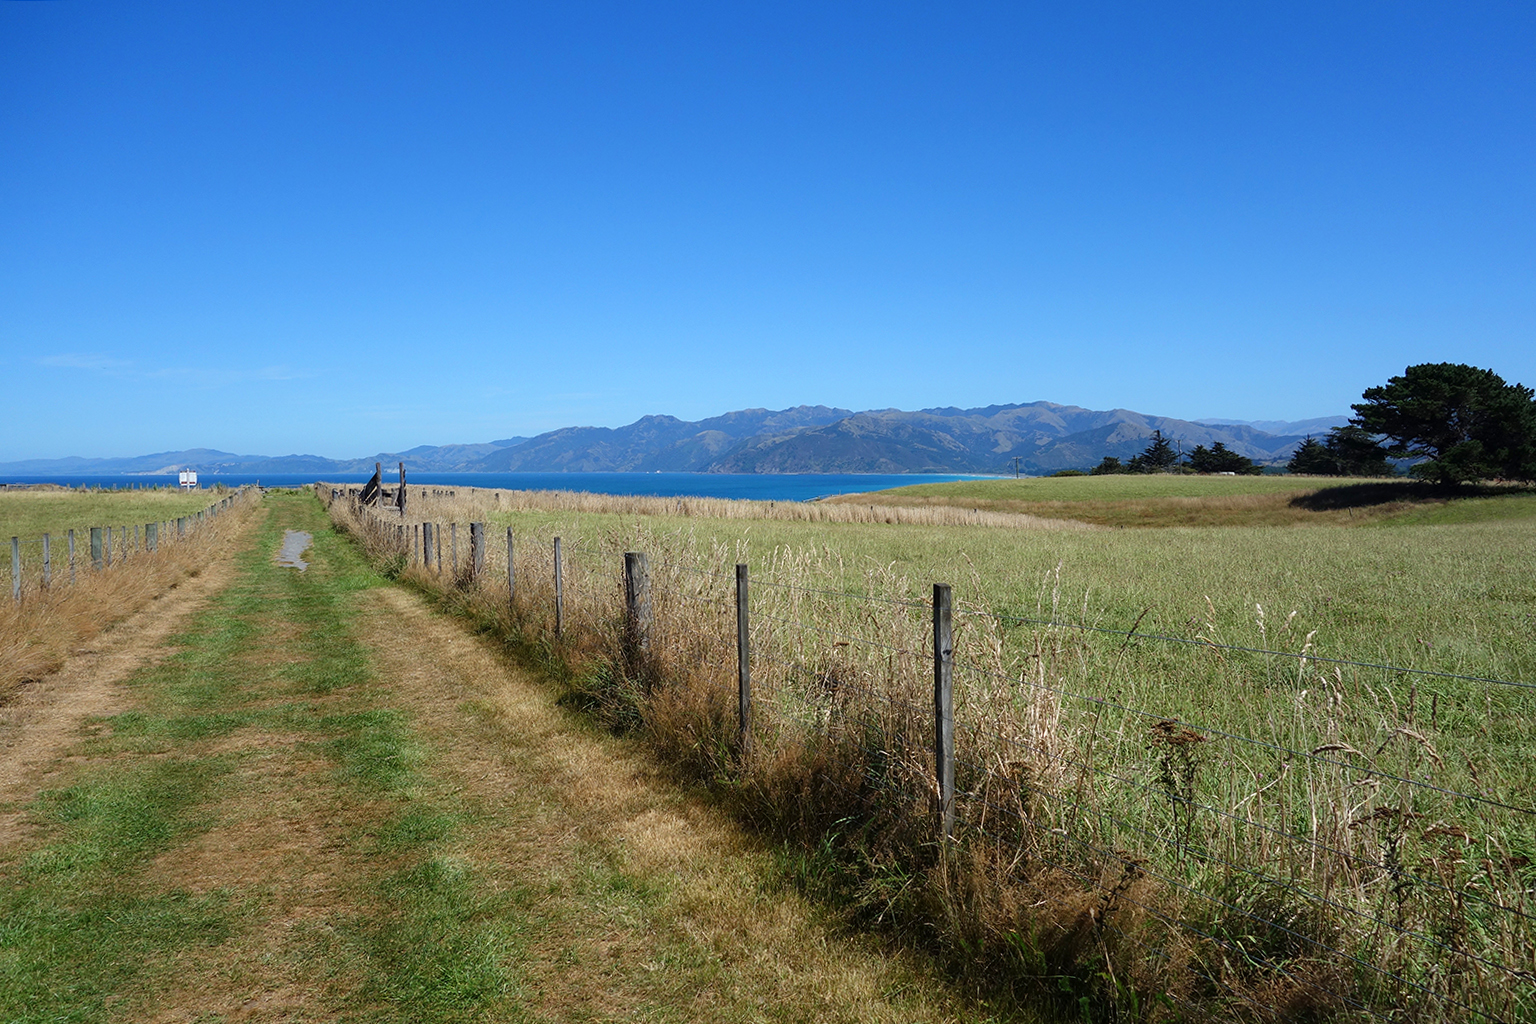 Hiking through farms in Kaikoura, NZ